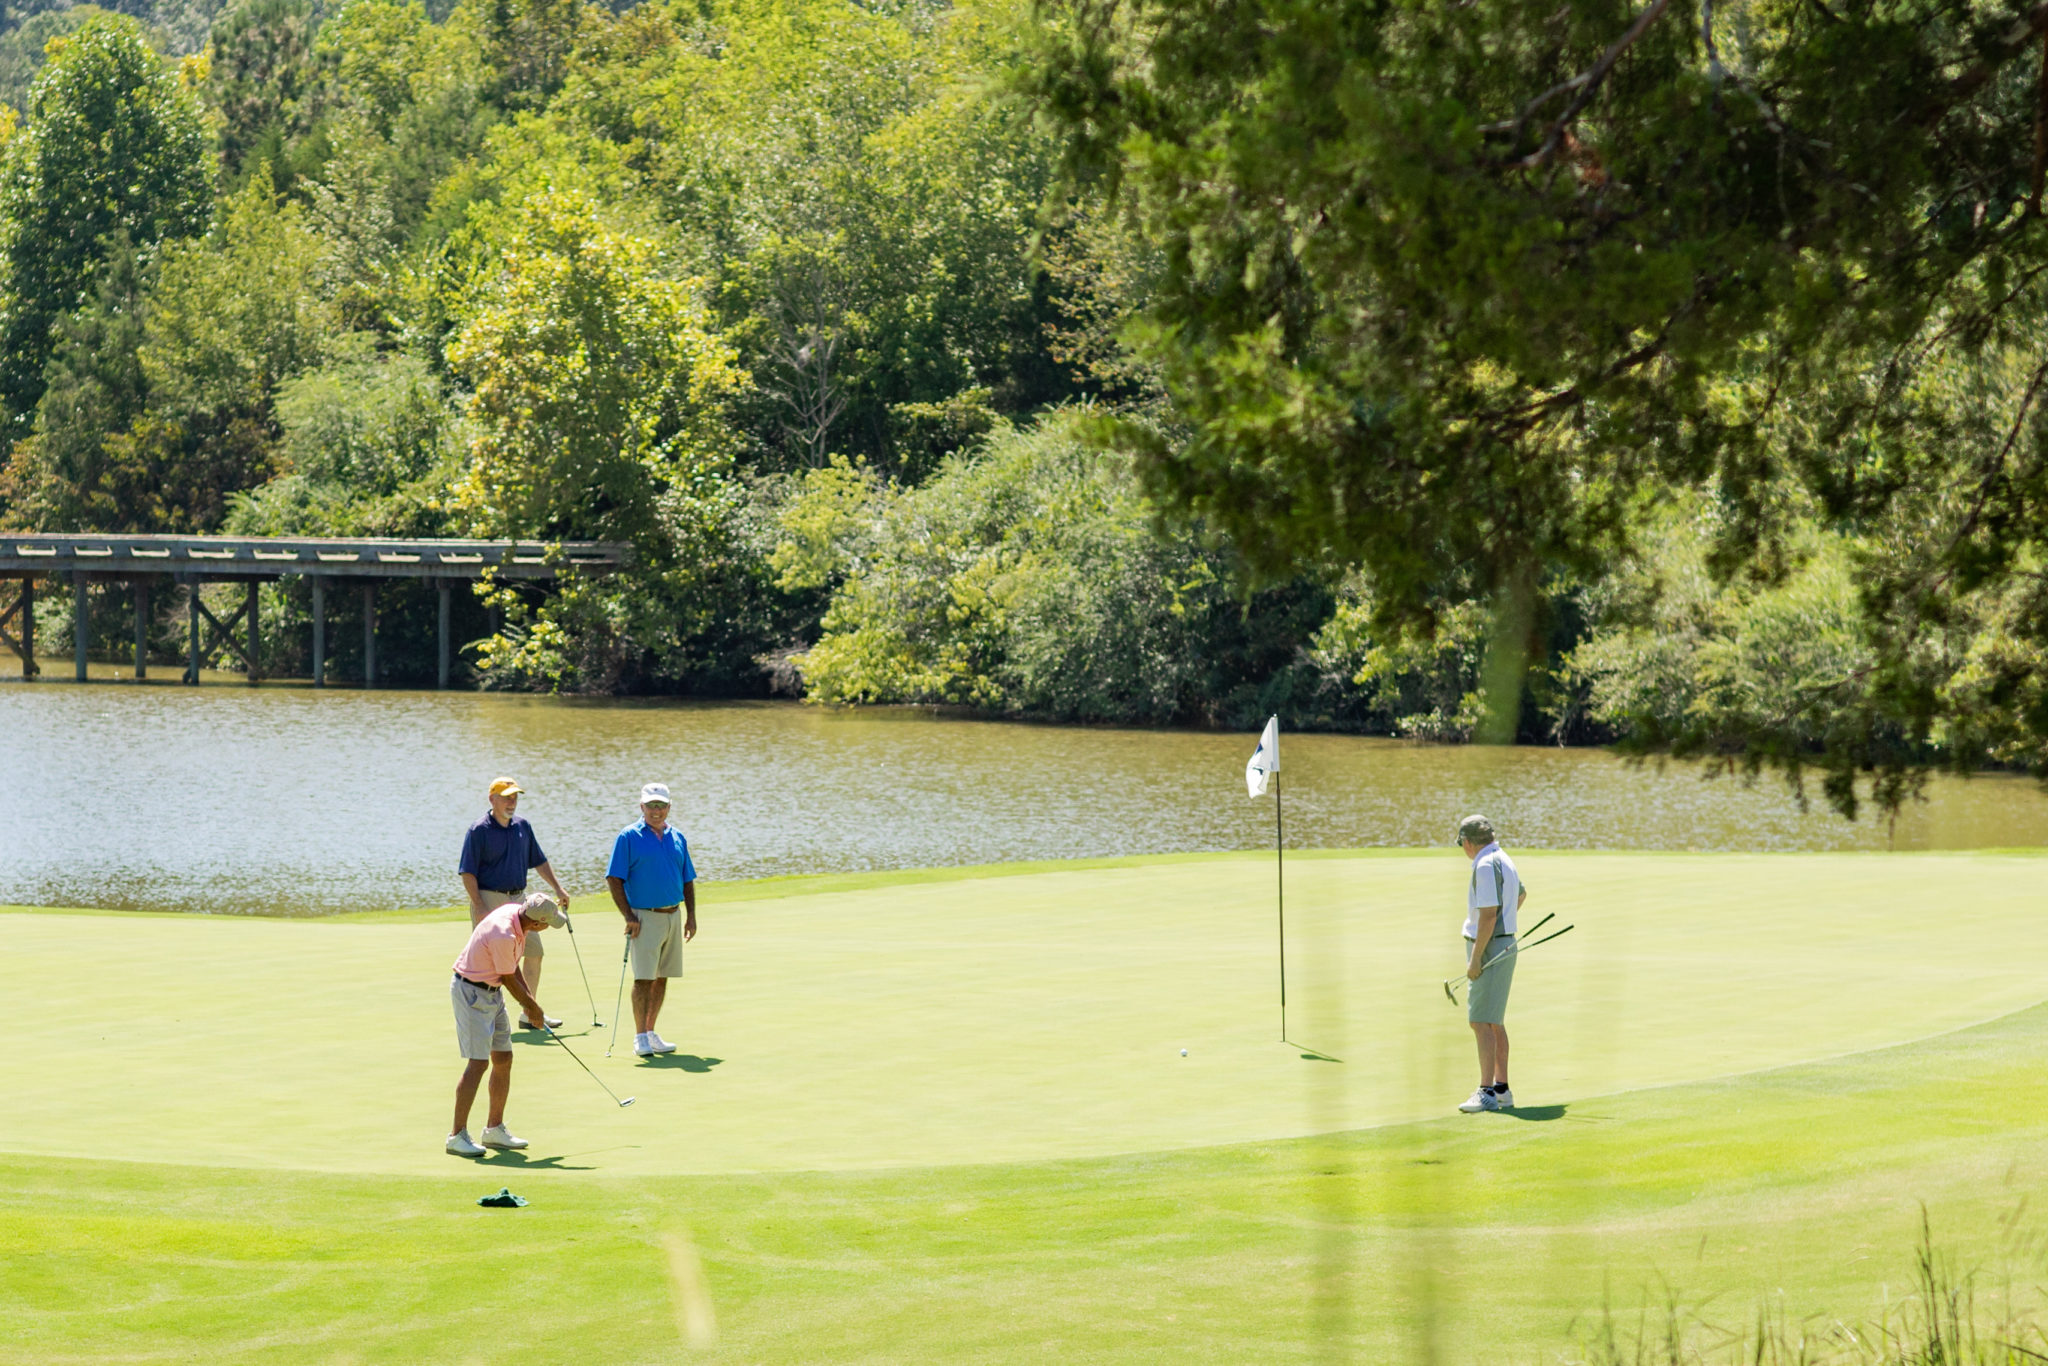 4 Men golfing at Tennessee National